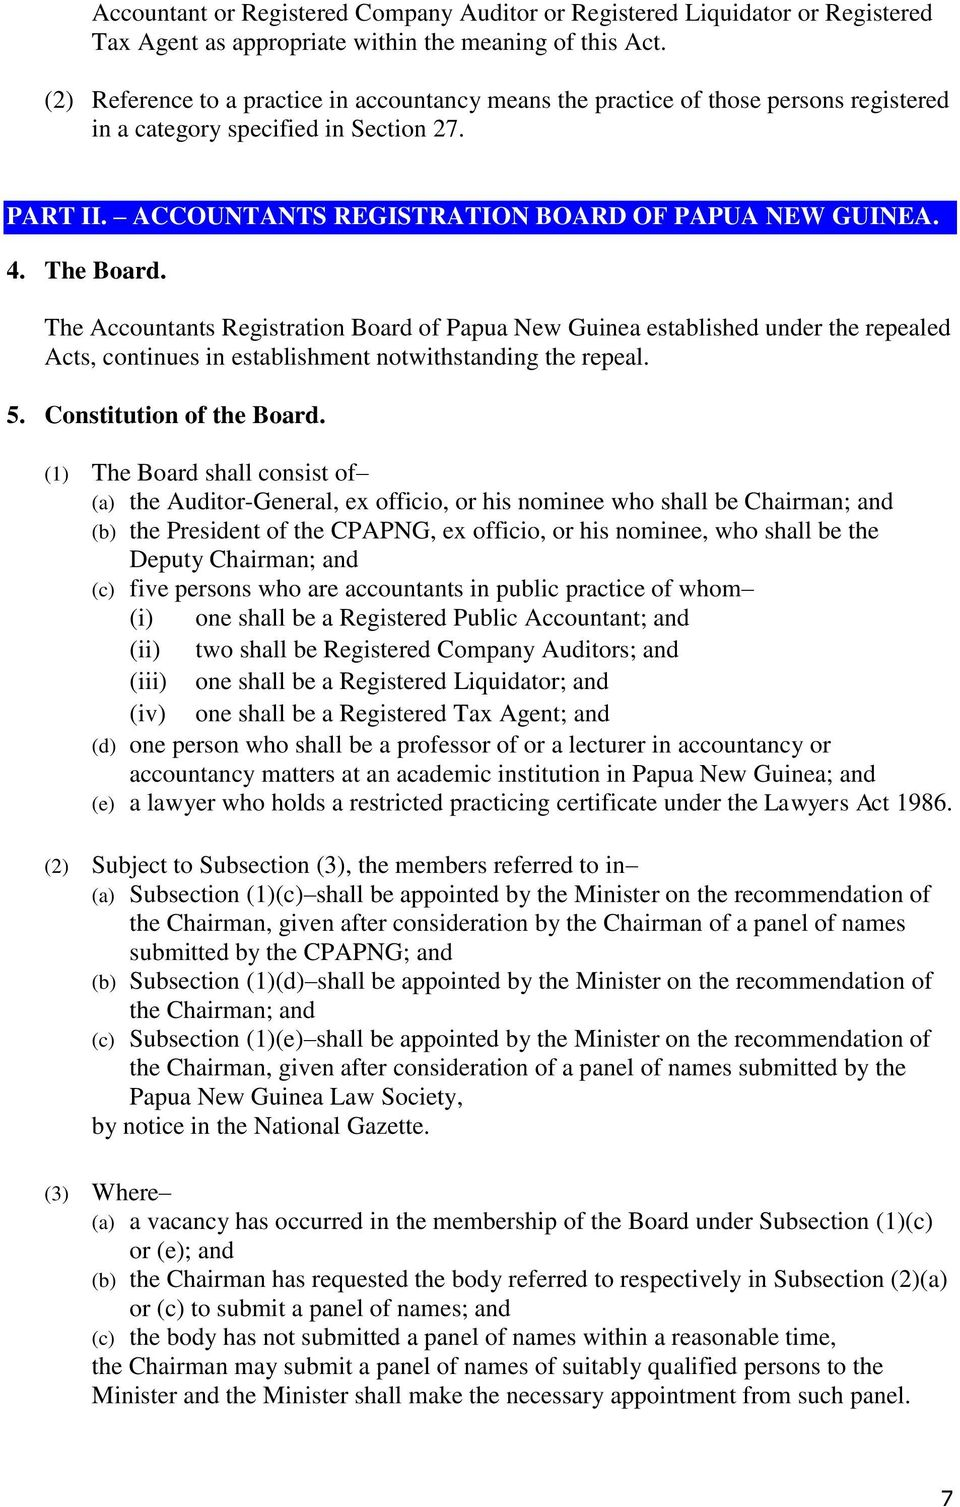 The Board. The Accountants Registration Board of Papua New Guinea established under the repealed Acts, continues in establishment notwithstanding the repeal. 5. Constitution of the Board.